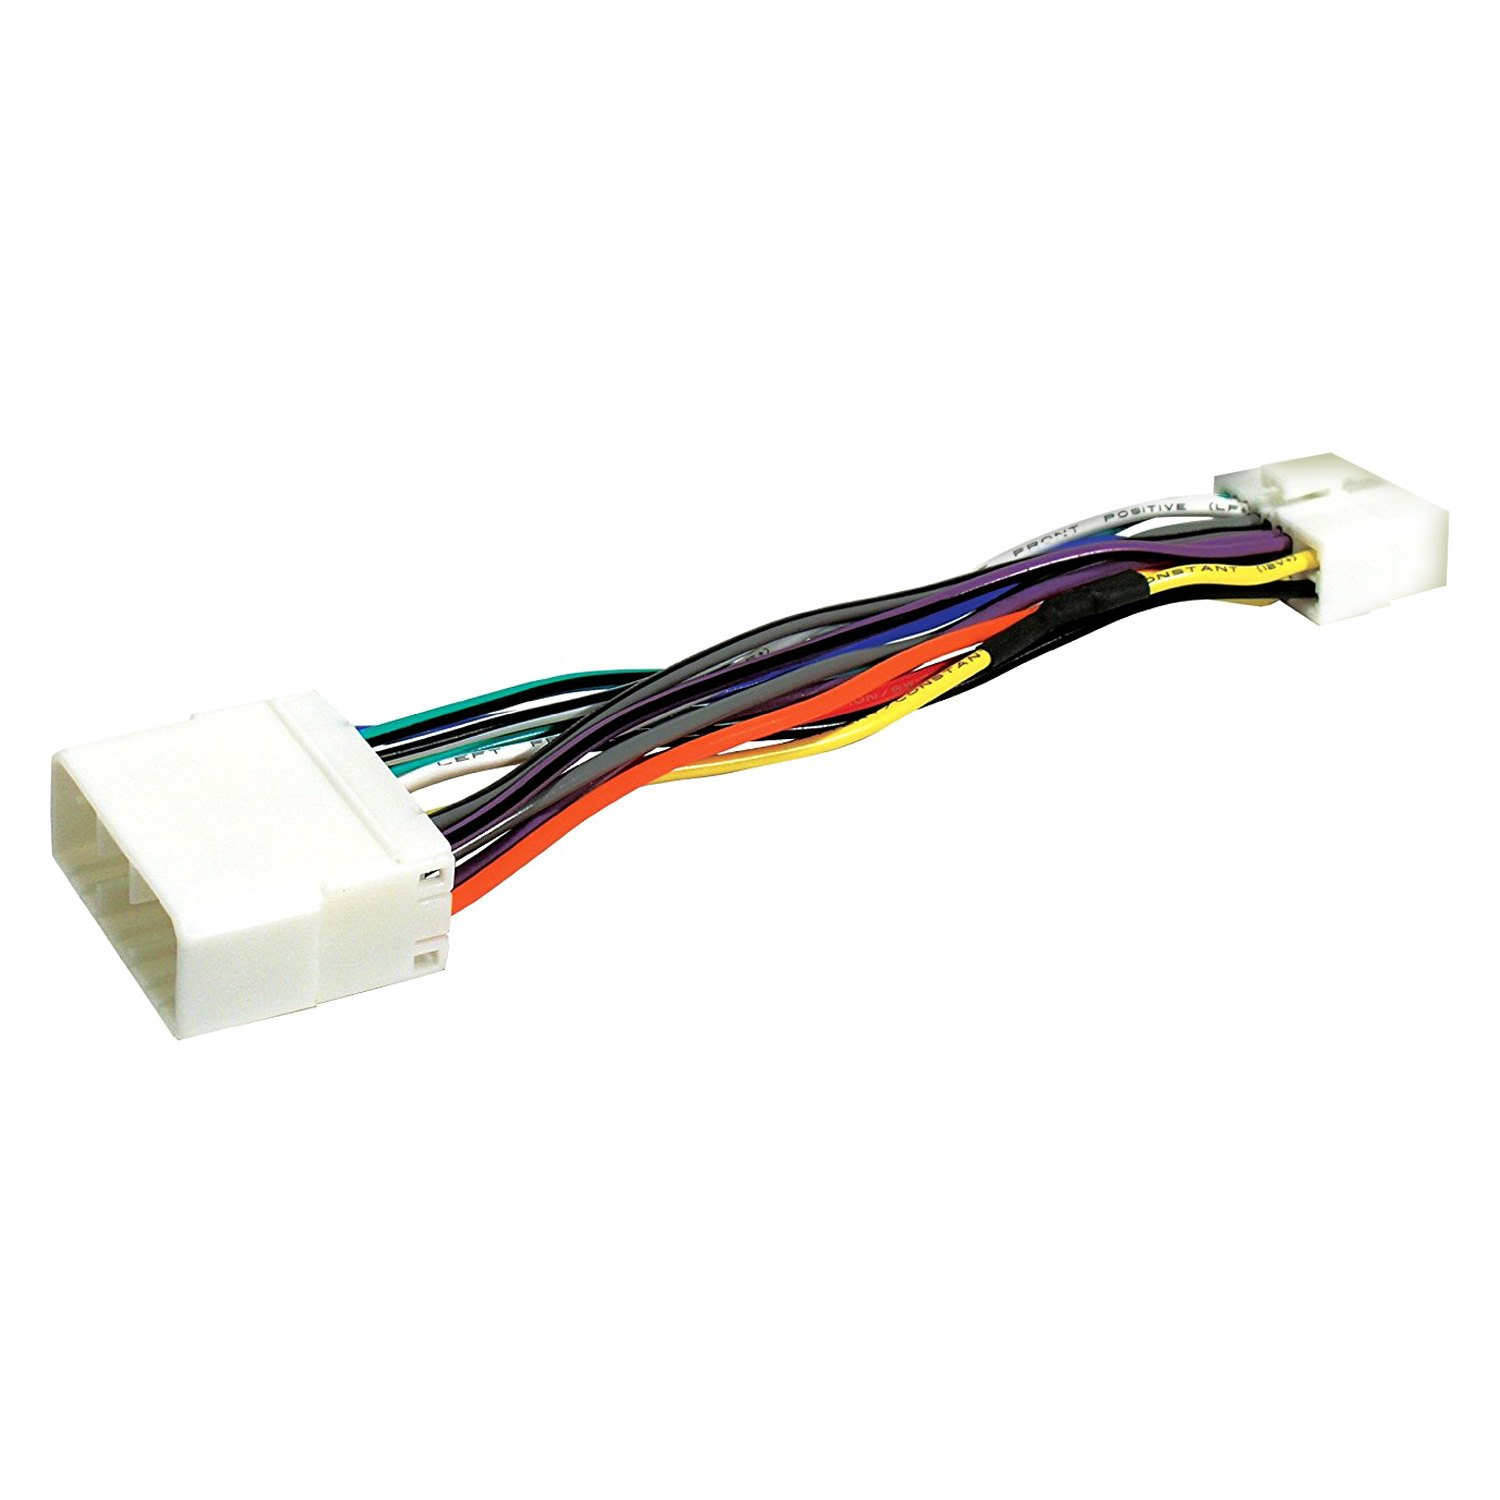 Scosche Smhy02clr16b Direct Connection Aftermarket Stereo Wiring Clarion Electrical Harness 16 Pin